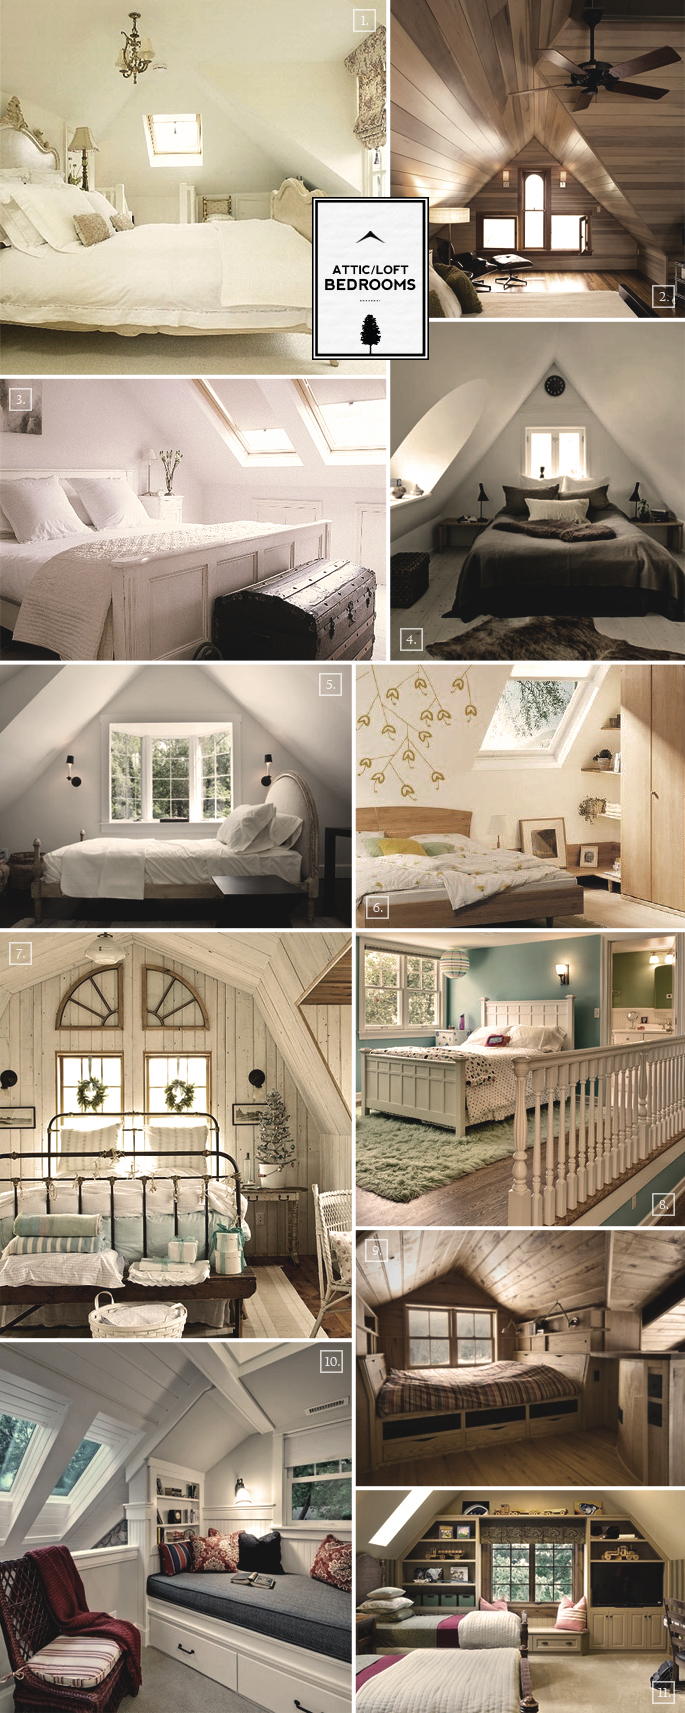 Design ideas for an attic loft bedroom home tree atlas for Attic bedroom ideas